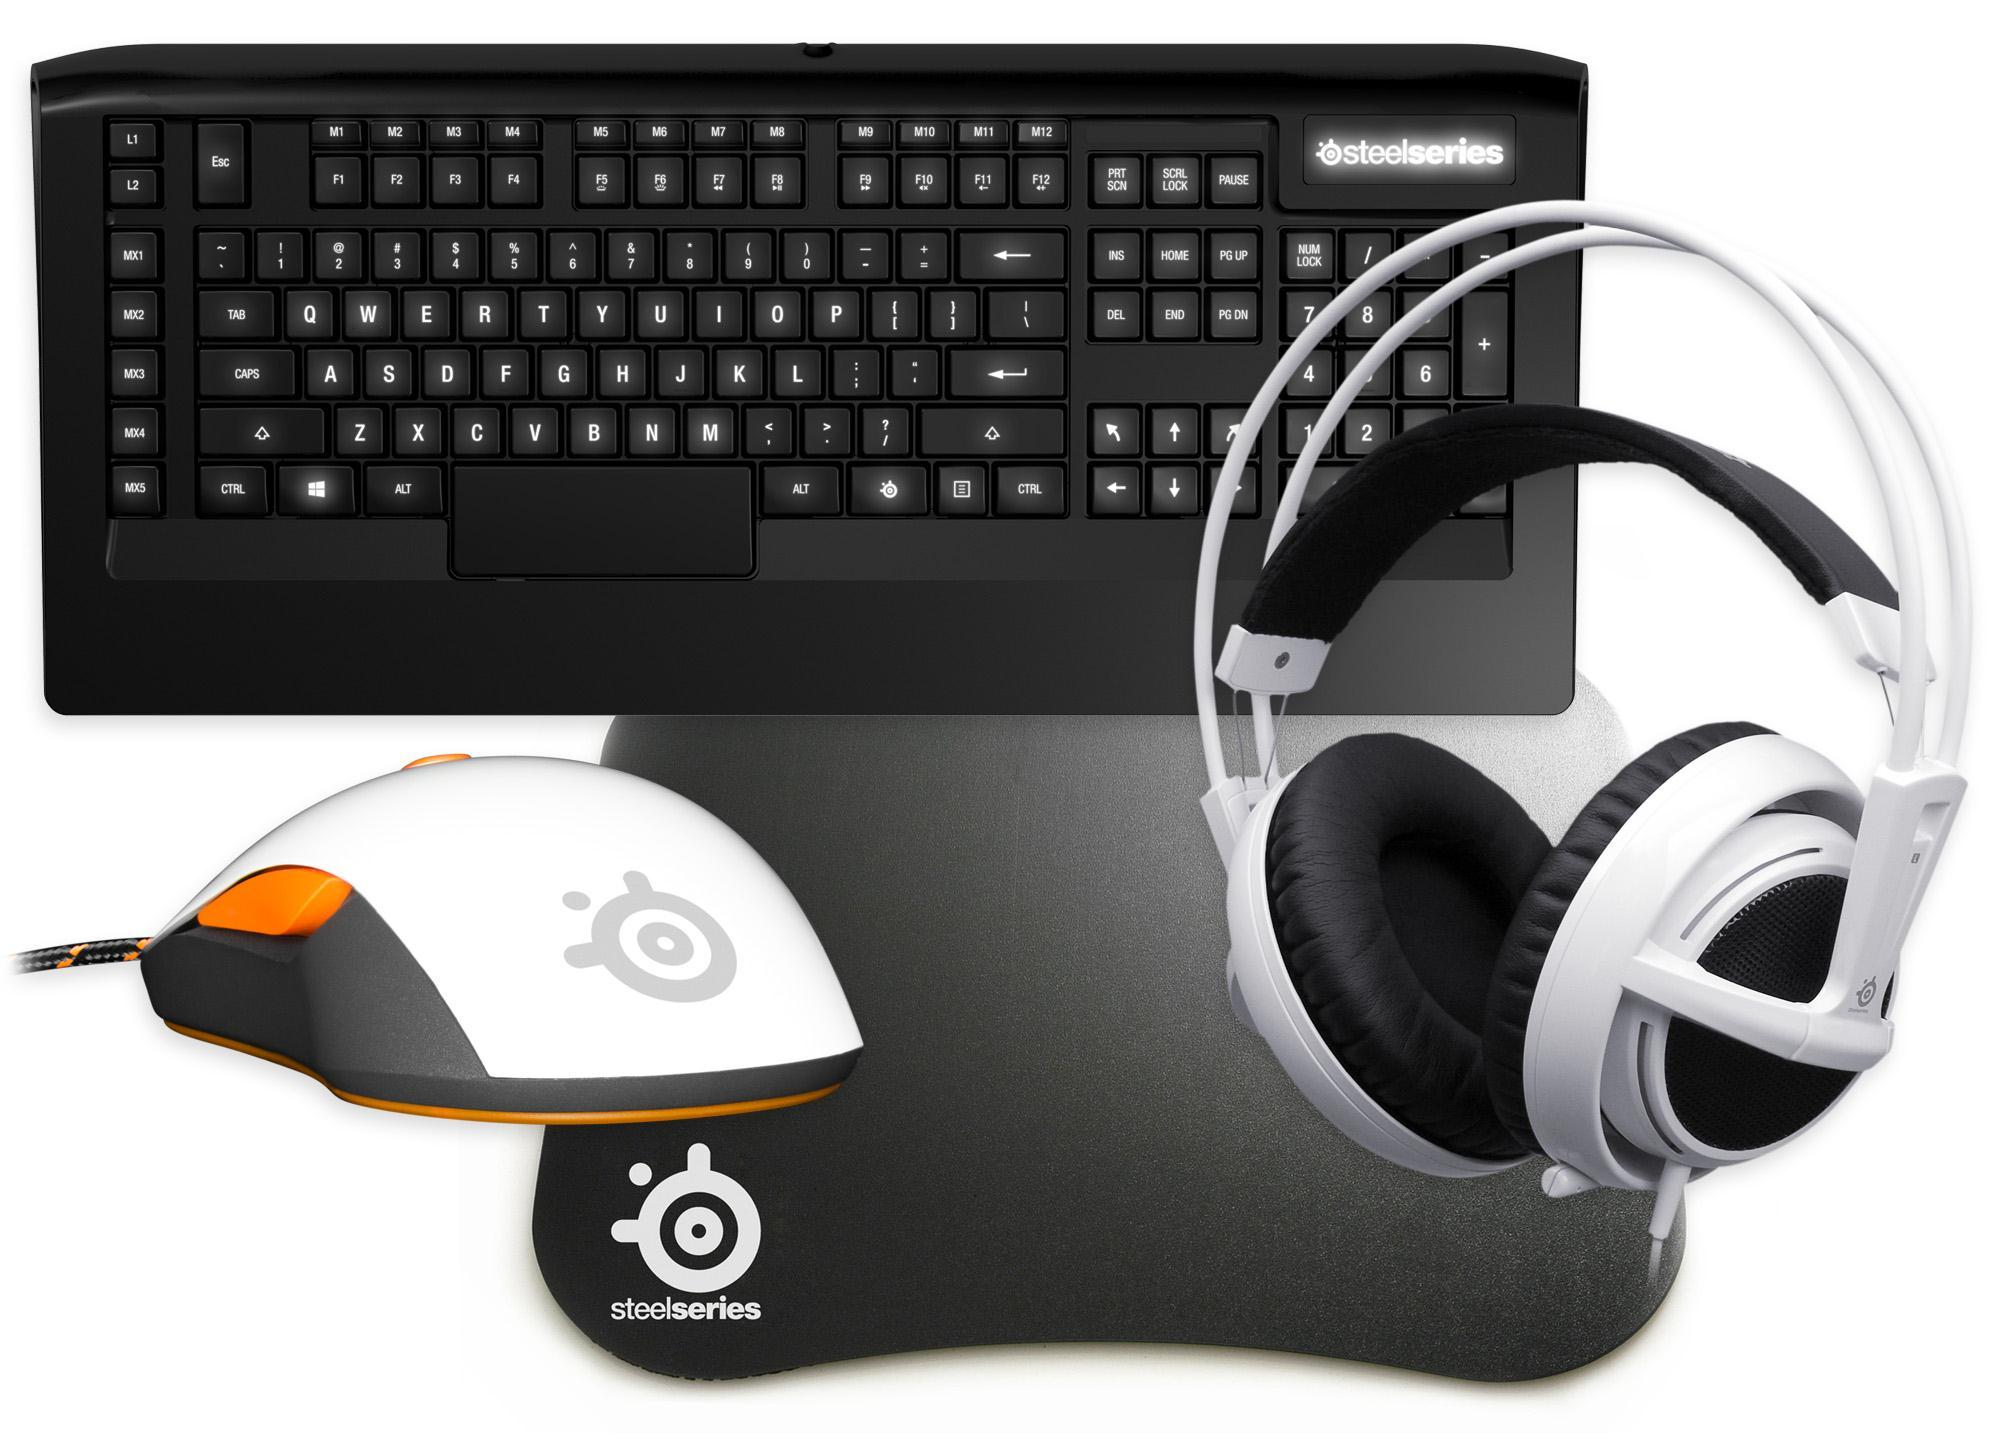 SteelSeries Gaming Mega Bundle 2 - Includes: Mouse Keyboard Headset & Surface